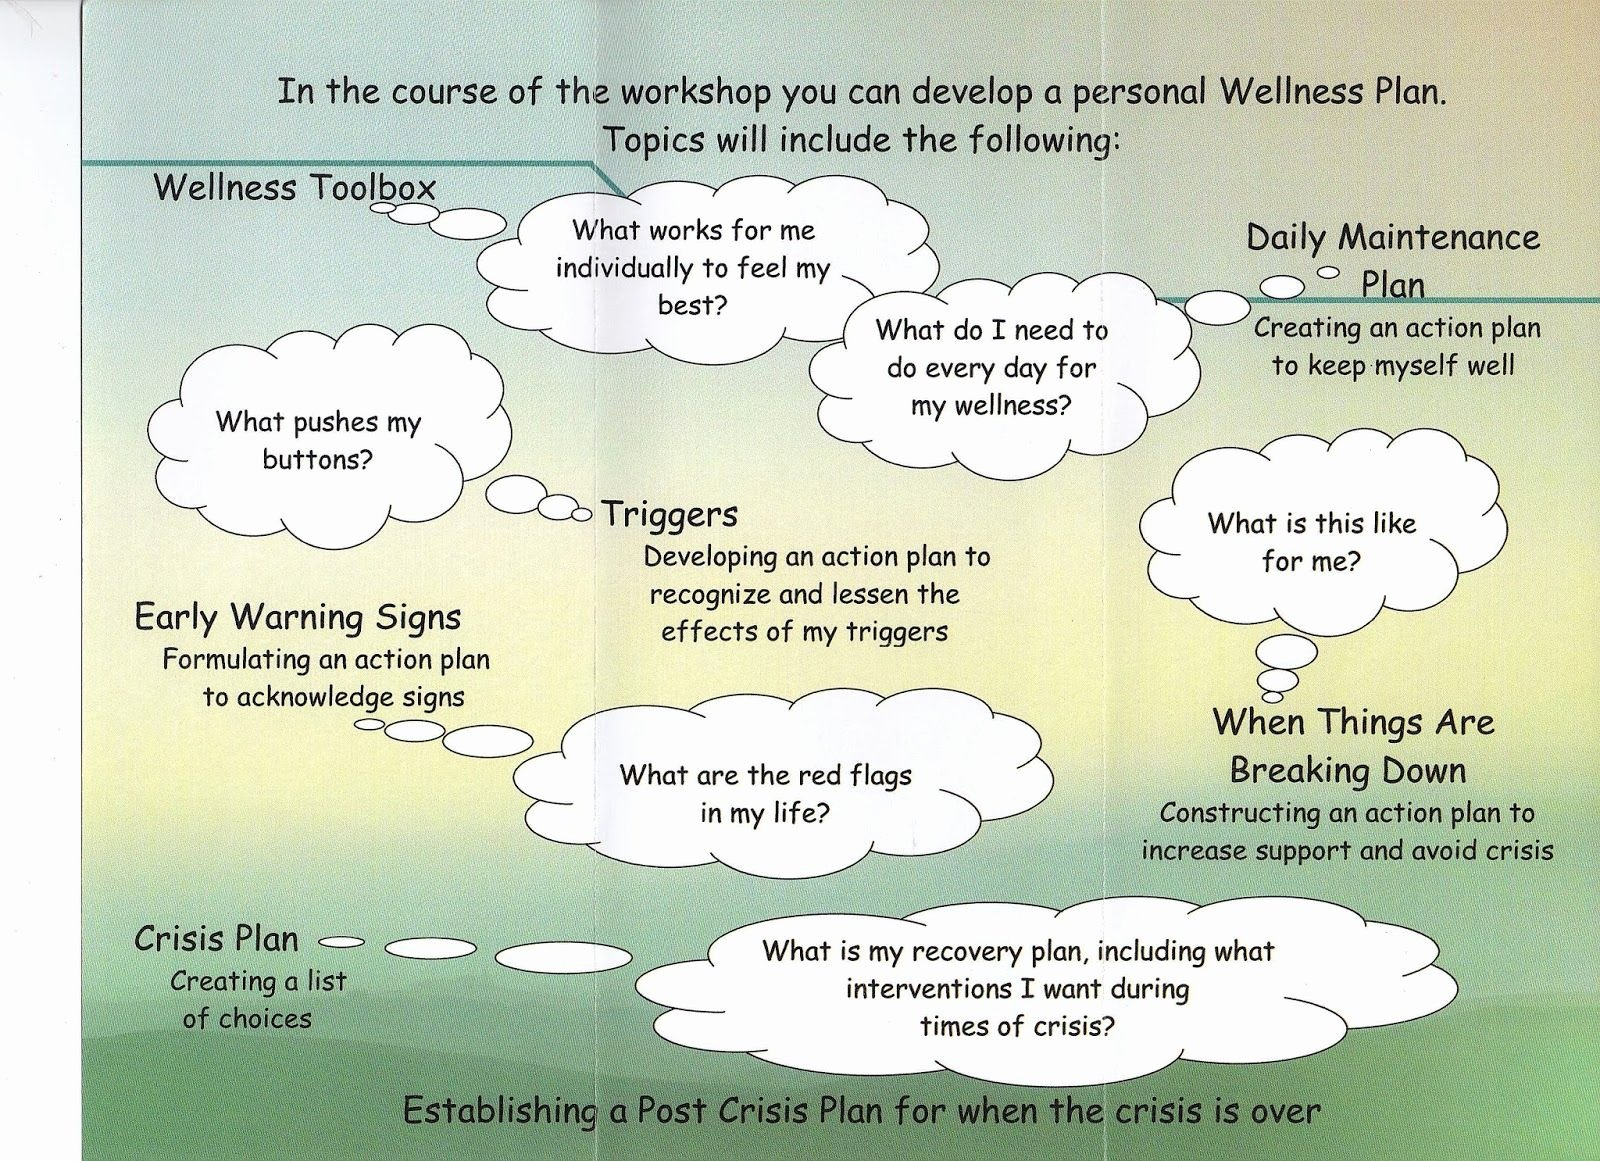 Wellness Recovery Action Plan Template Inspirational W R A P Wellness Recovery Action Plan Wellness tools